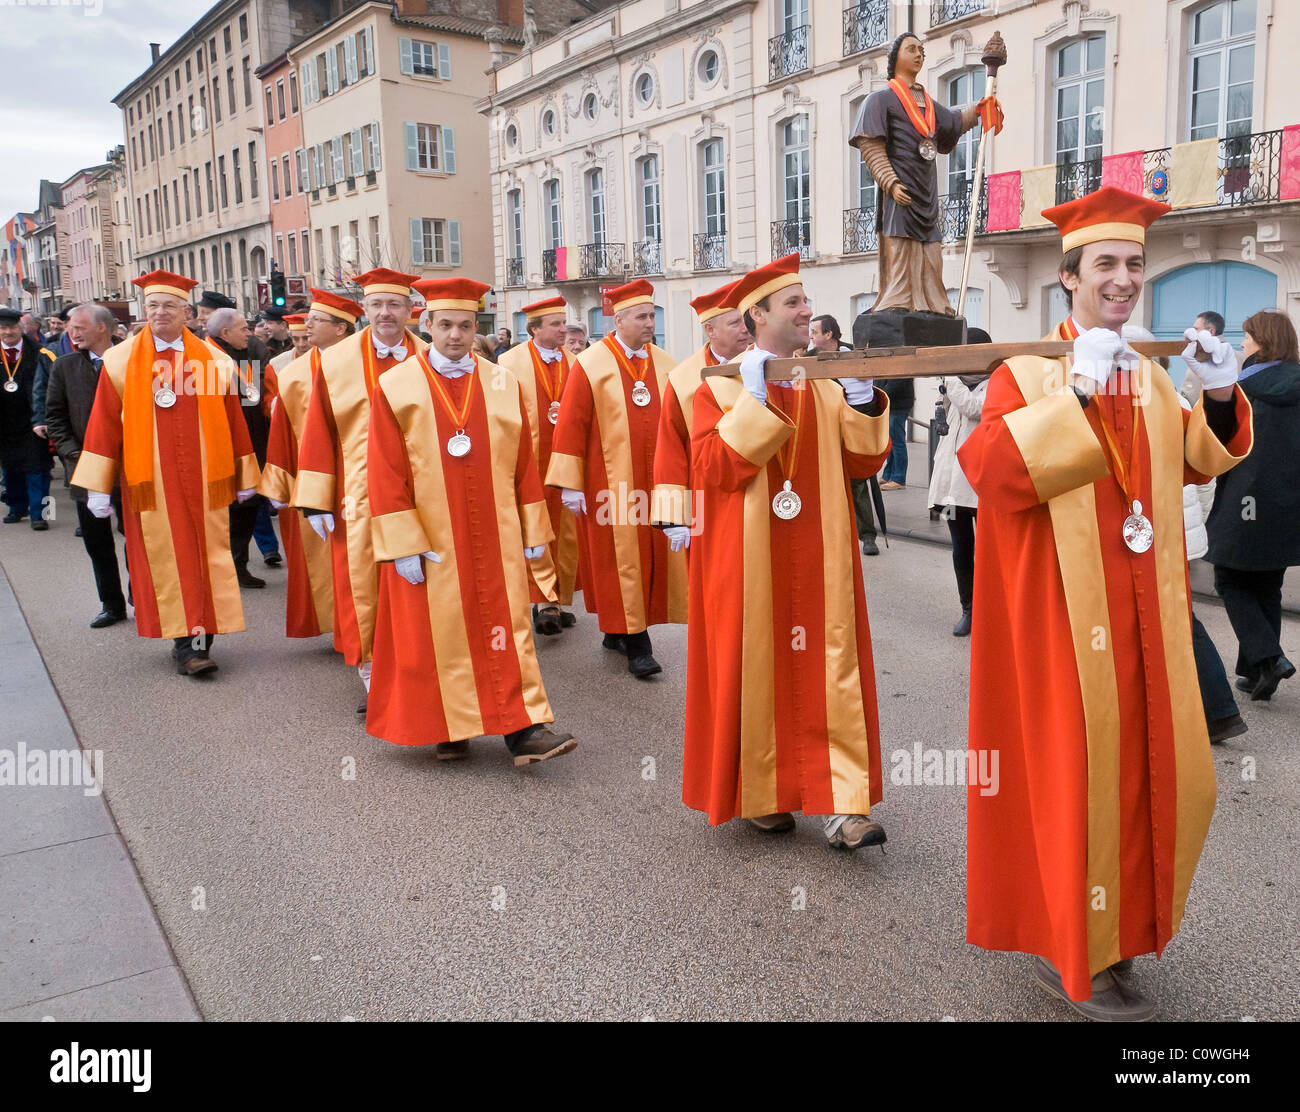 "Procession in traditional garments of the vineyard brotherhoods during the traditional feast of the ""Saint-Vincent Stock Photo"